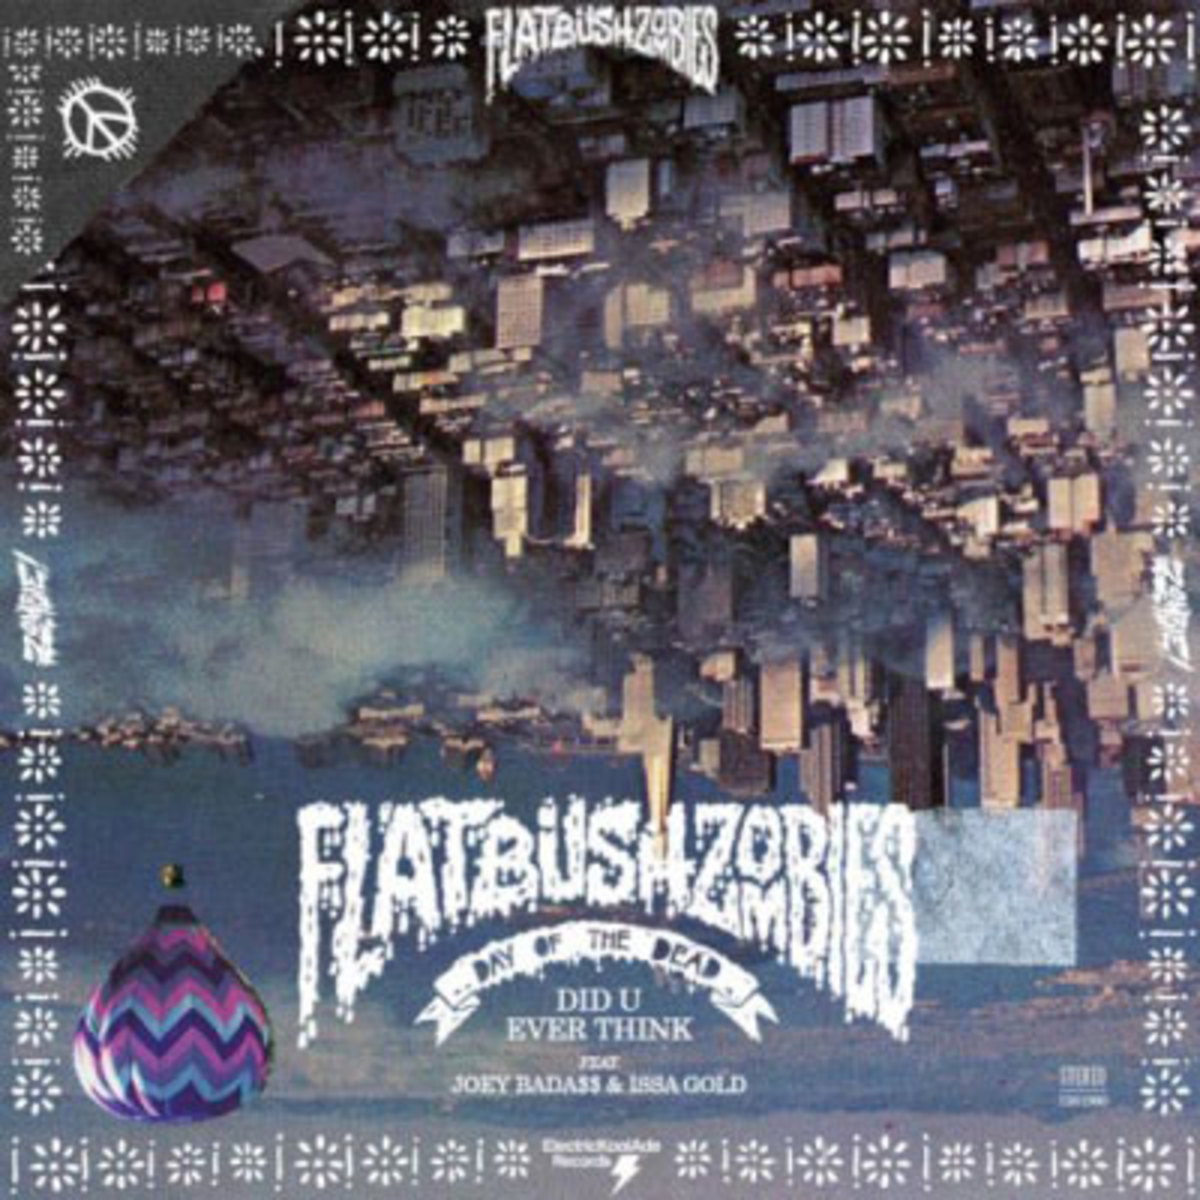 flatbush-zombies-did-u-ever-think.jpg